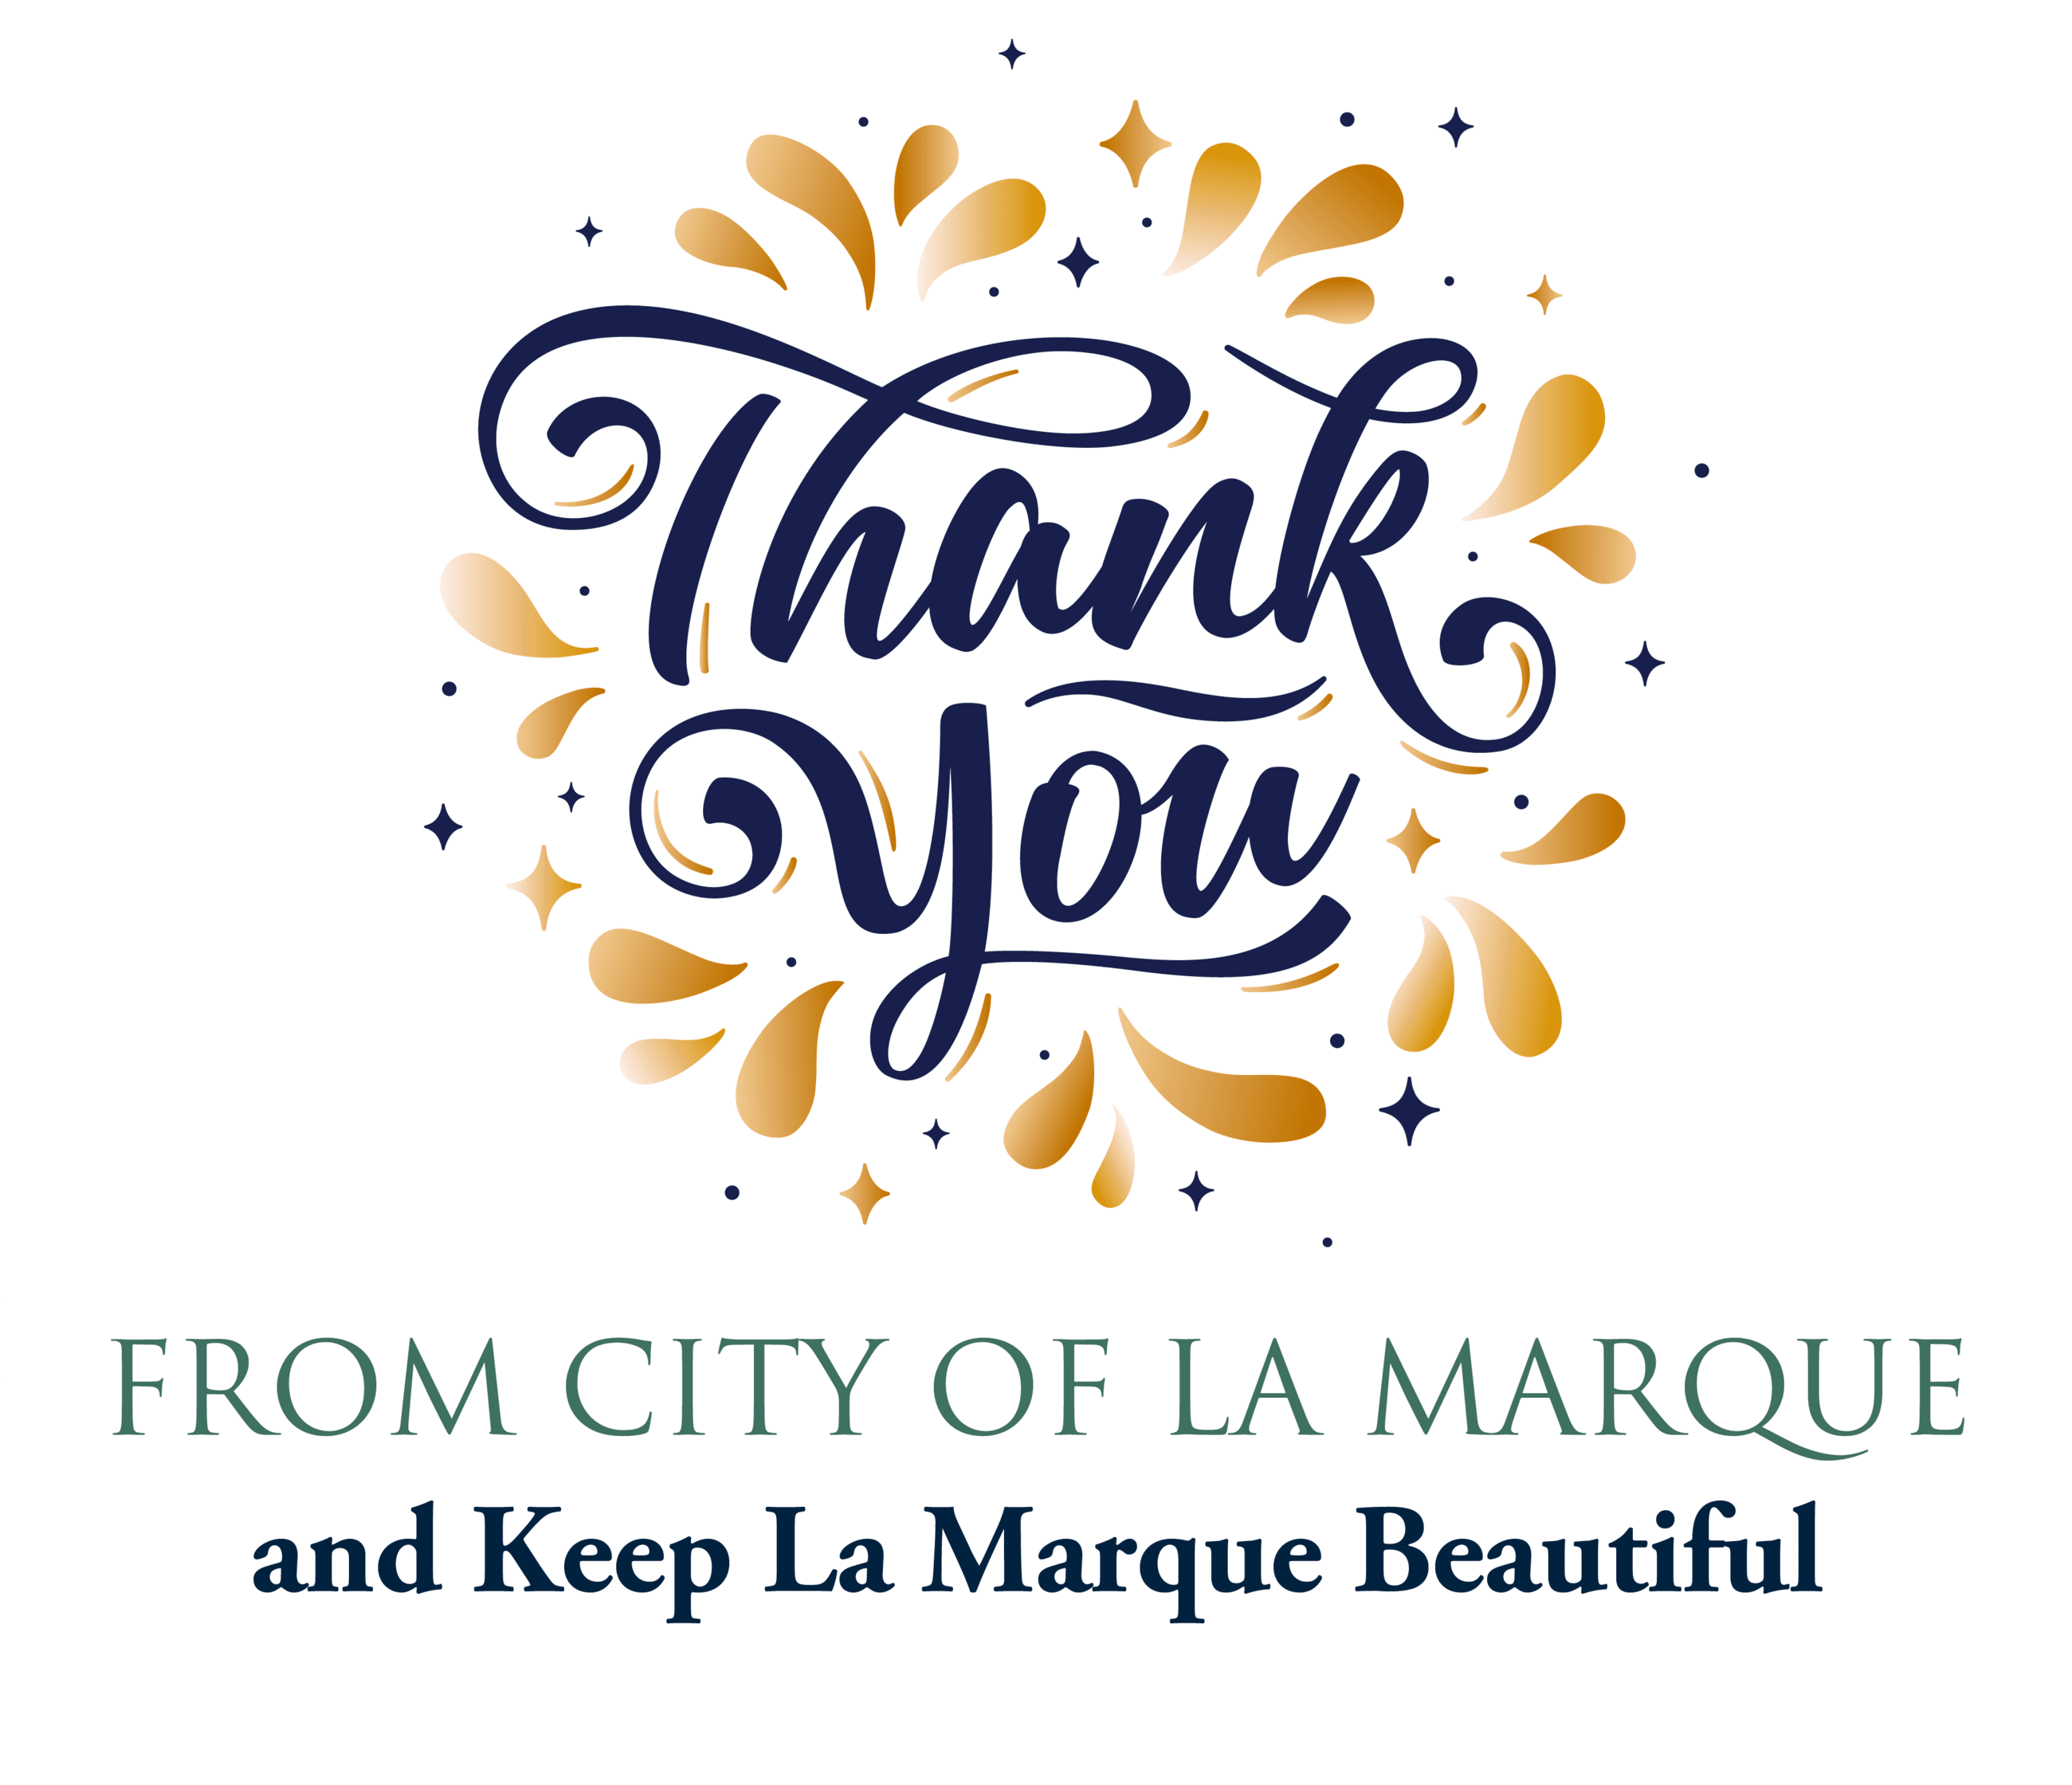 Thank You from City and Keep La Marque graphic